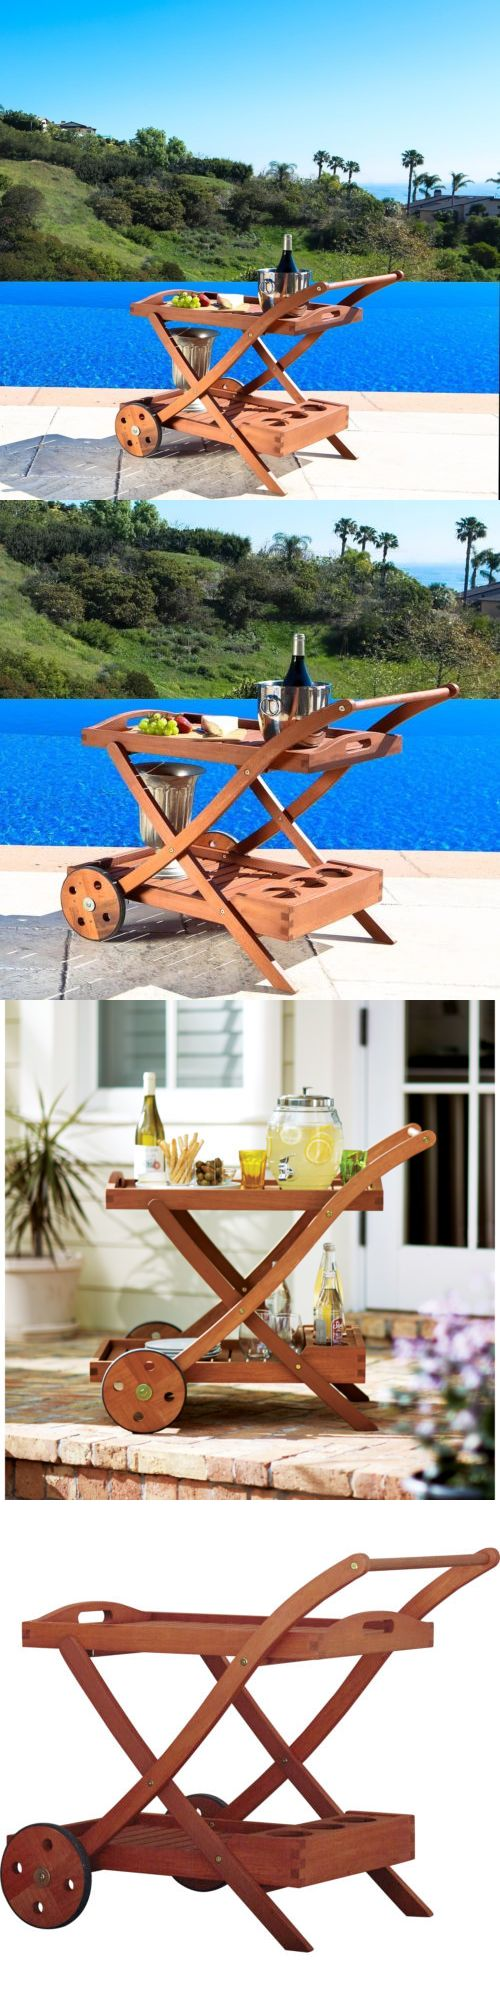 Outdoor buffet table serving cart as well century modern console table - Bar Carts And Serving Carts 183320 Serving Cart Patio Furniture Kitchen Rolling Vintage Wood Outdoor